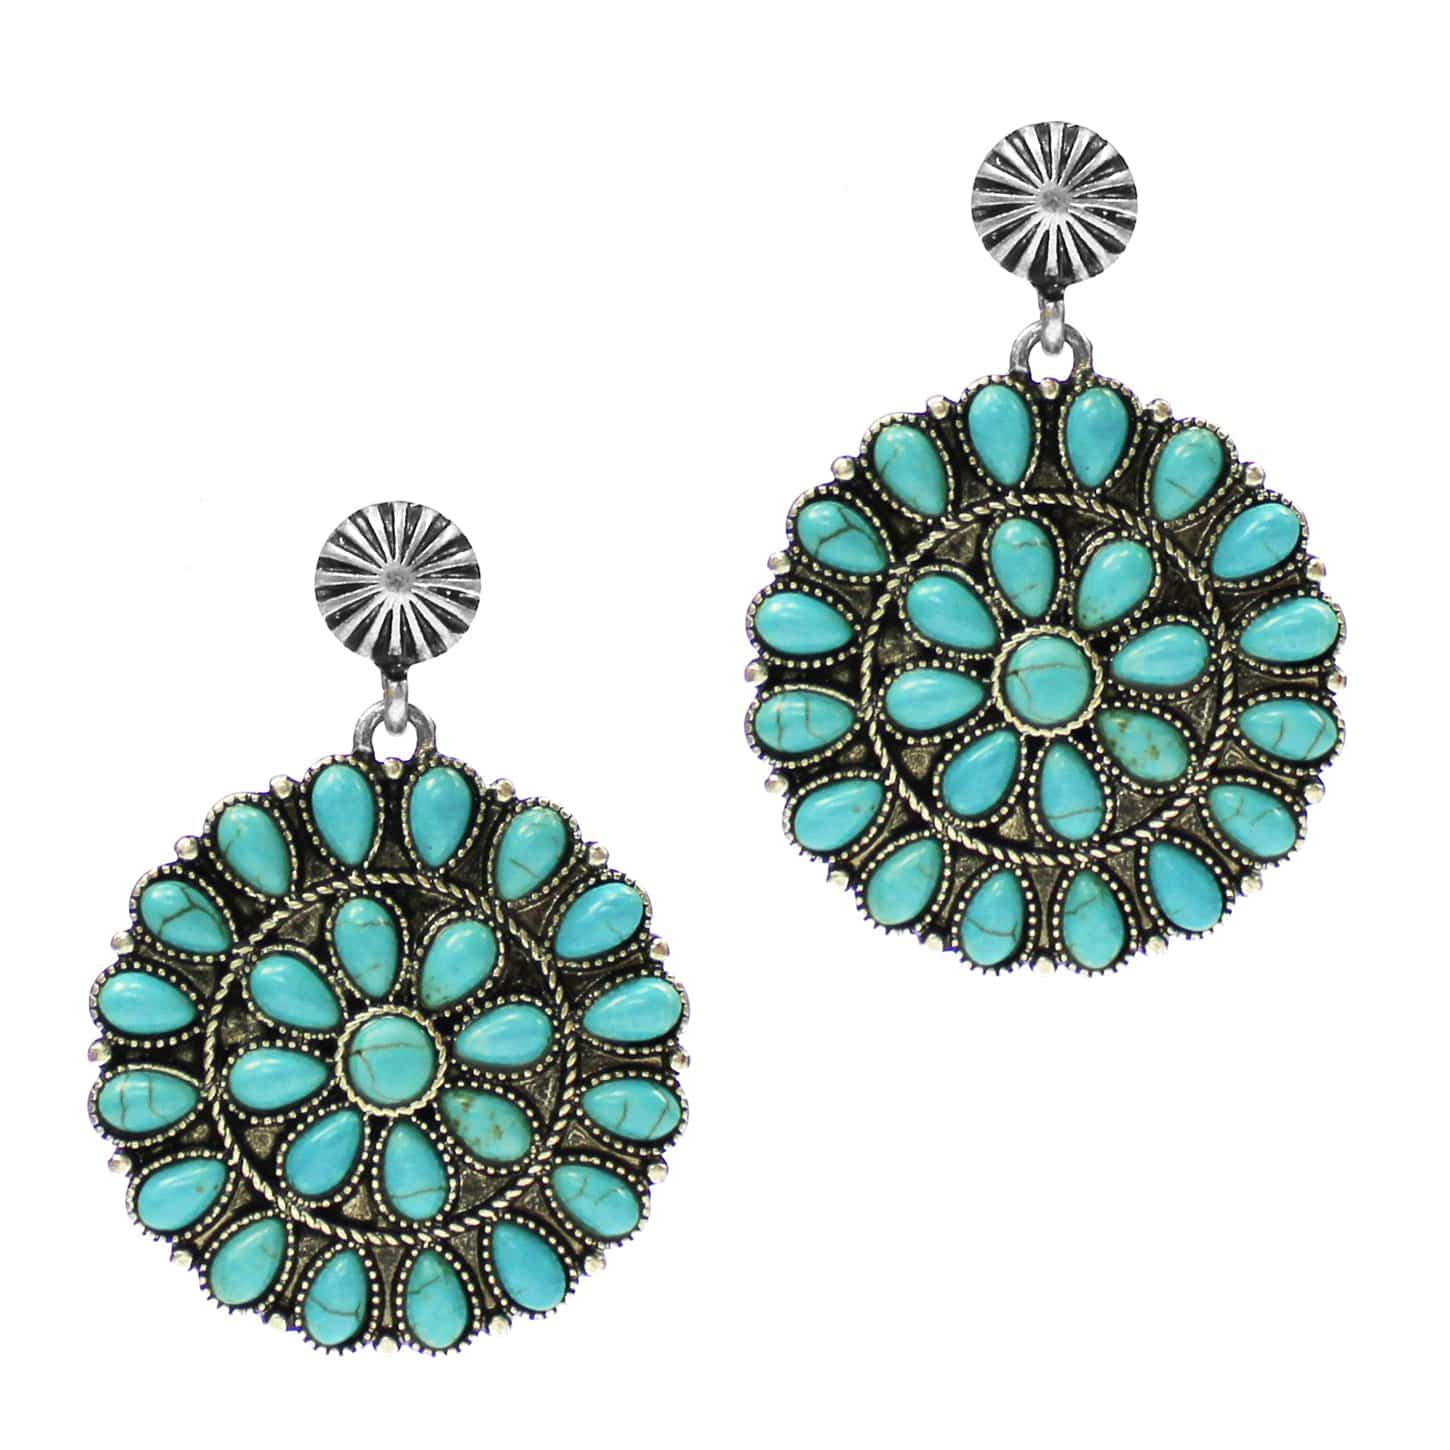 0022BOS Fashion Earrings Perryton Drop Cluster Earrings